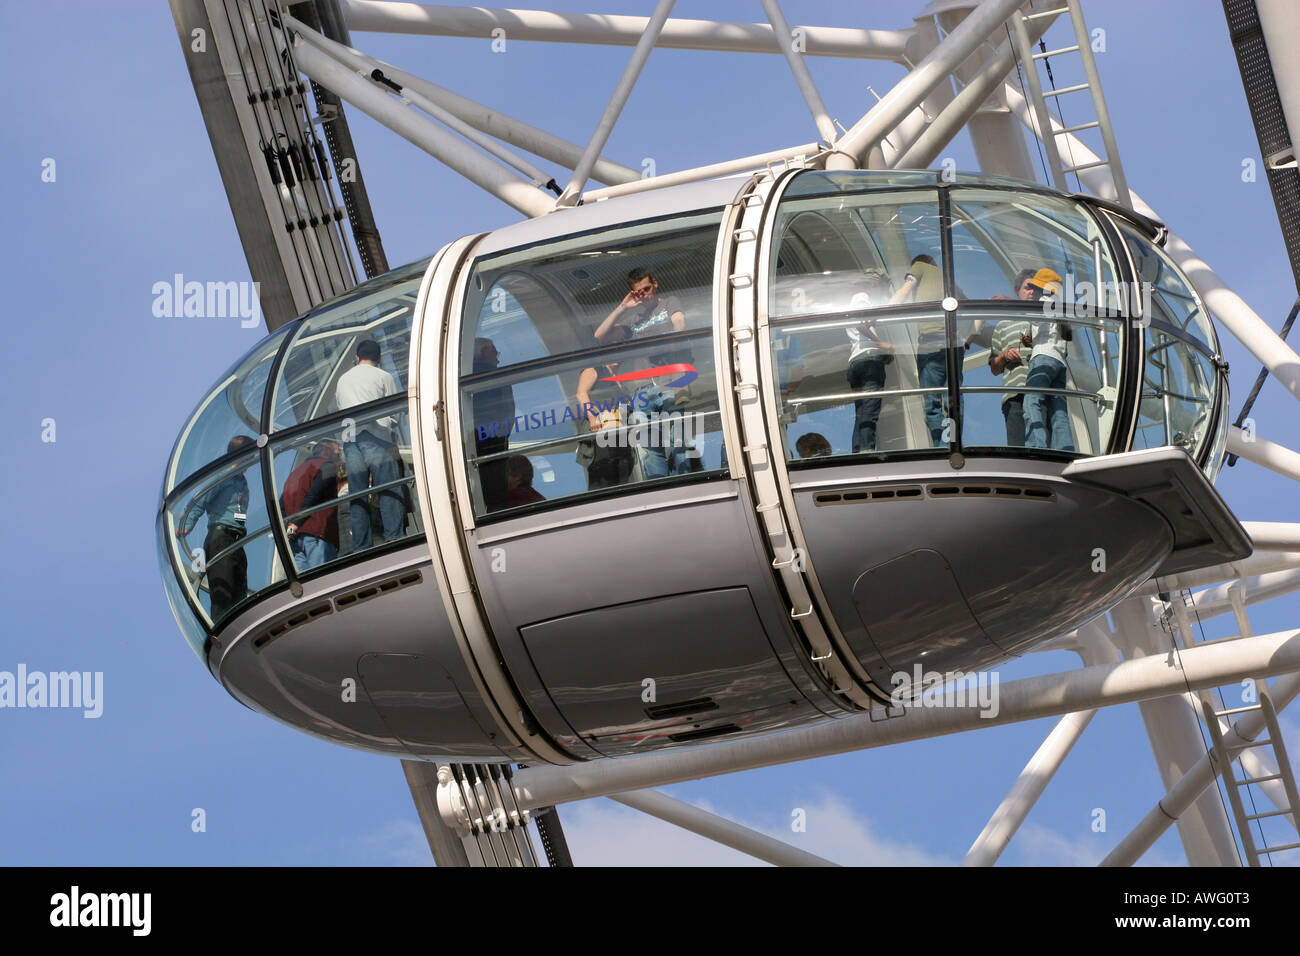 Closeup of a tourist filled capsule pod on the popular landmark tourism attraction The London Eye UK Europe Stock Photo